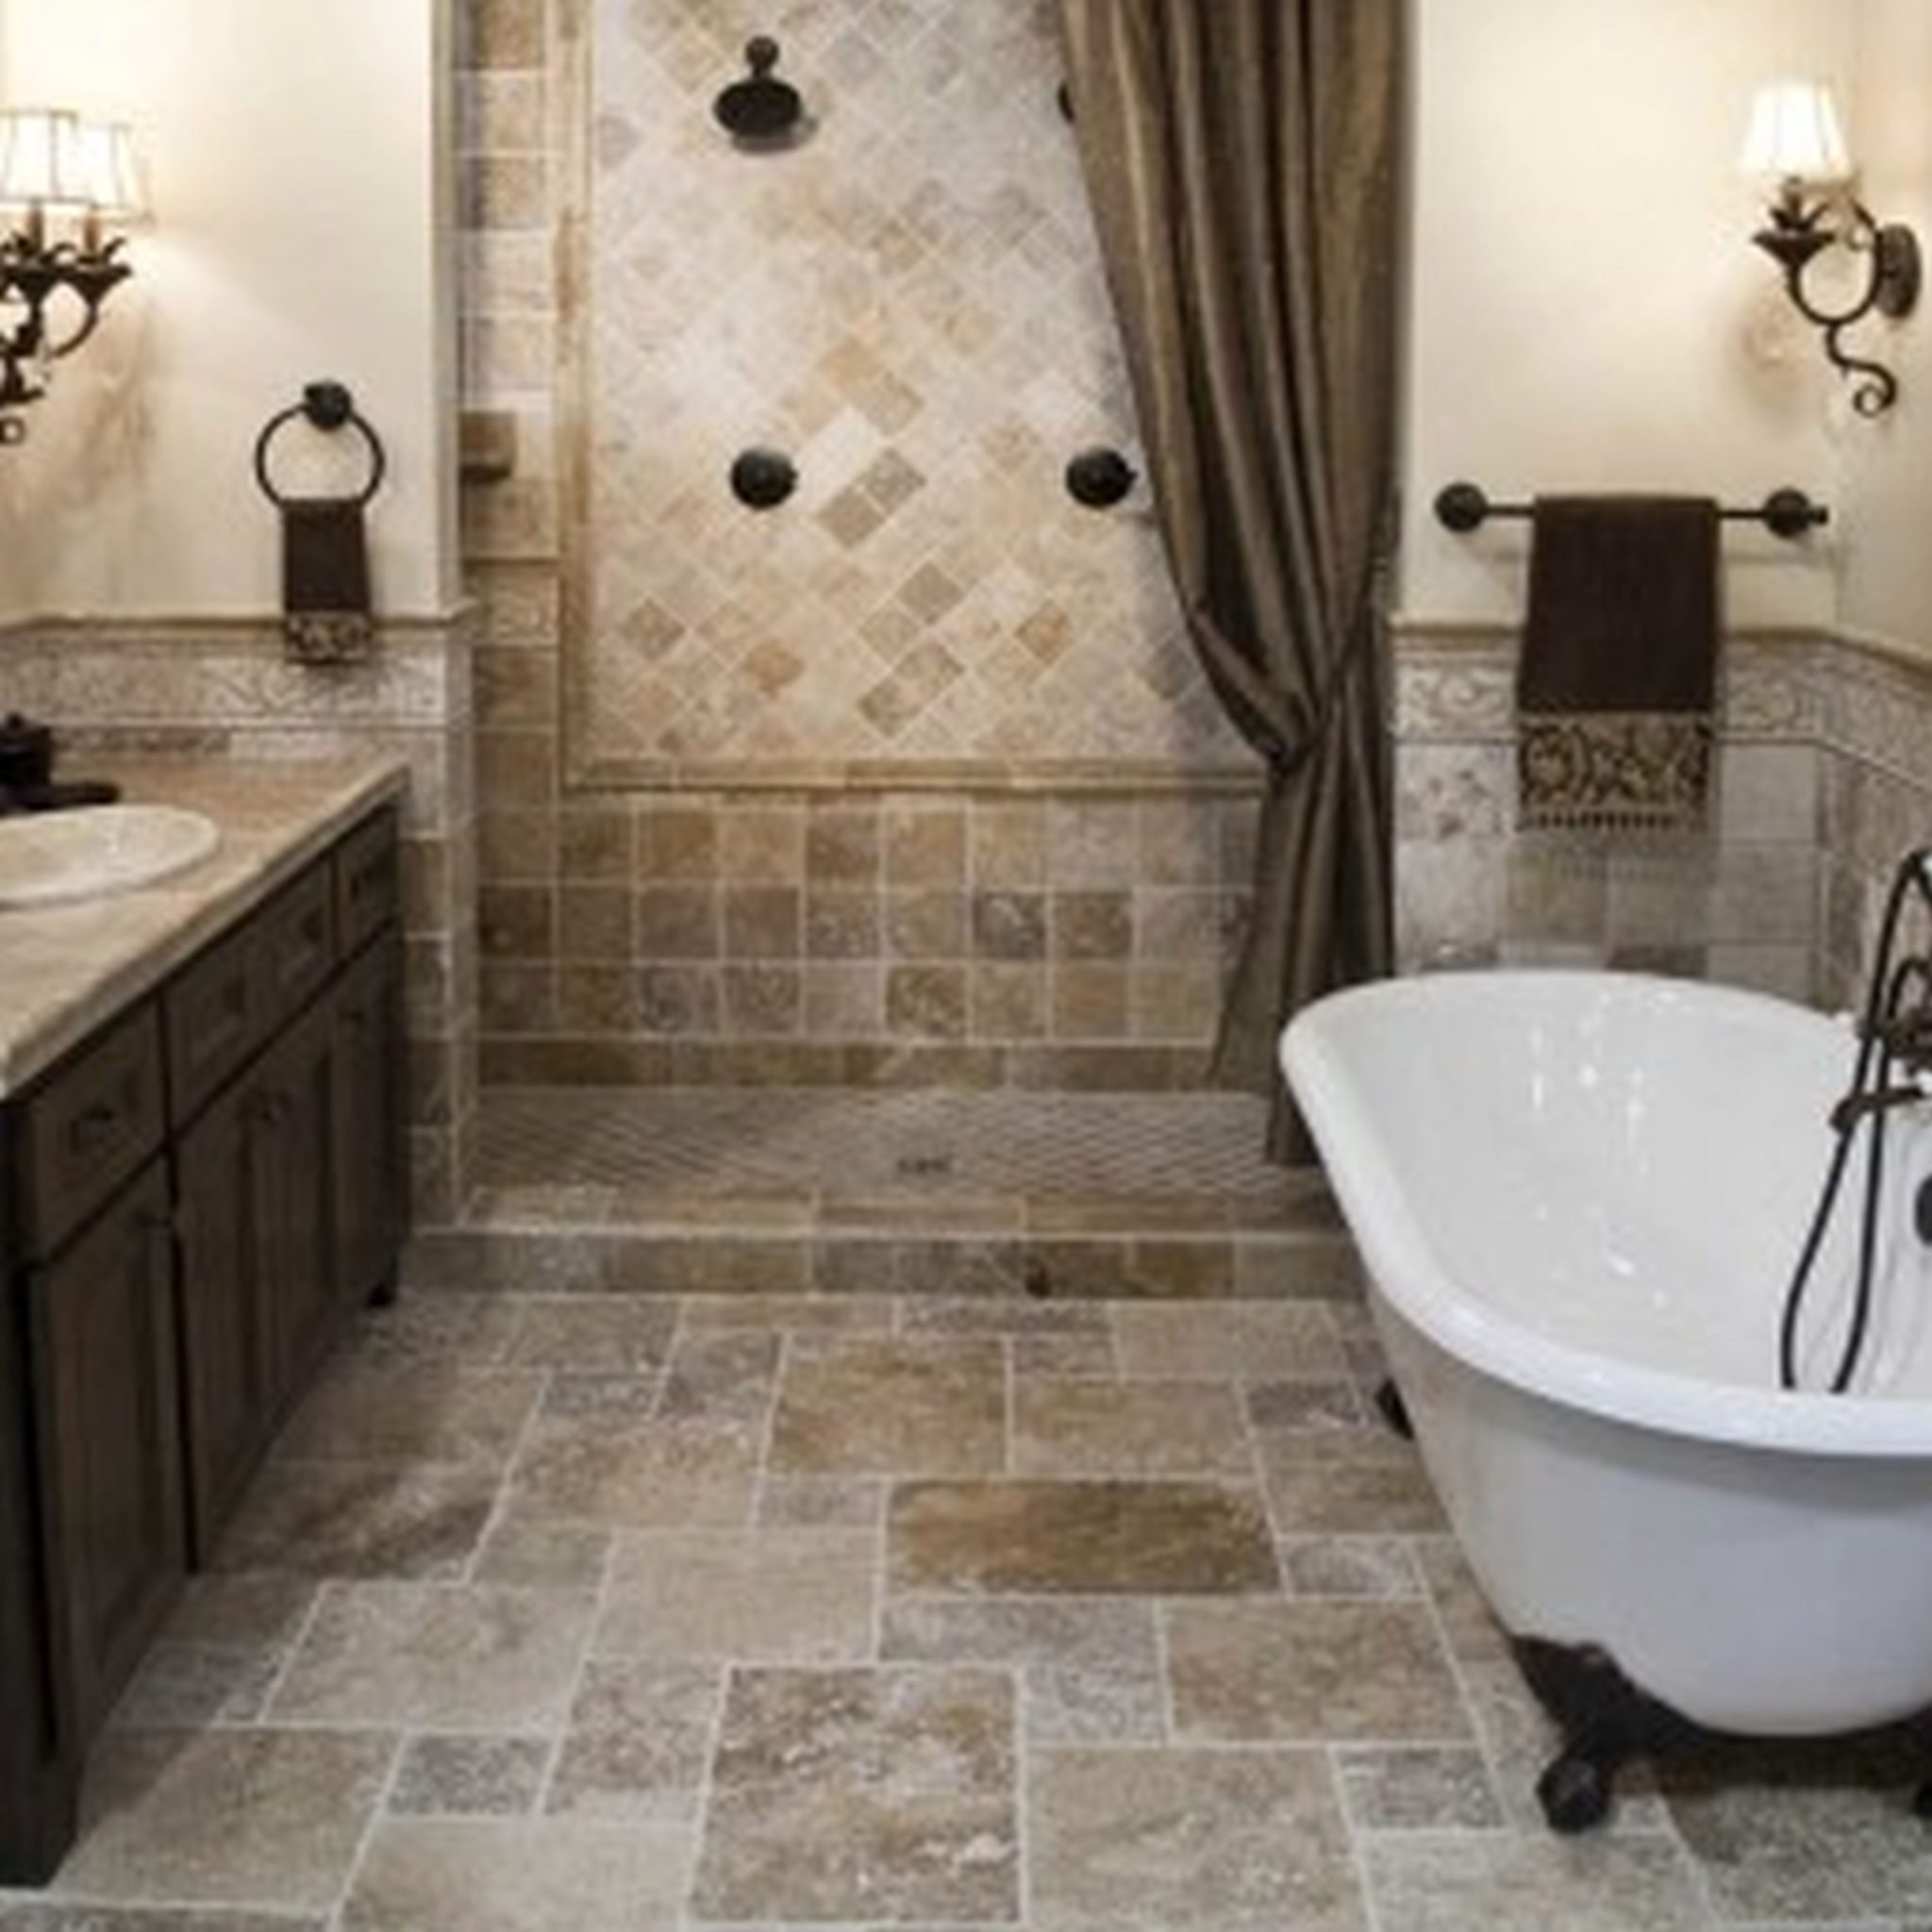 10 Great Small Bathroom Floor Tile Ideas collection of solutions bathroom tile design ideas for small